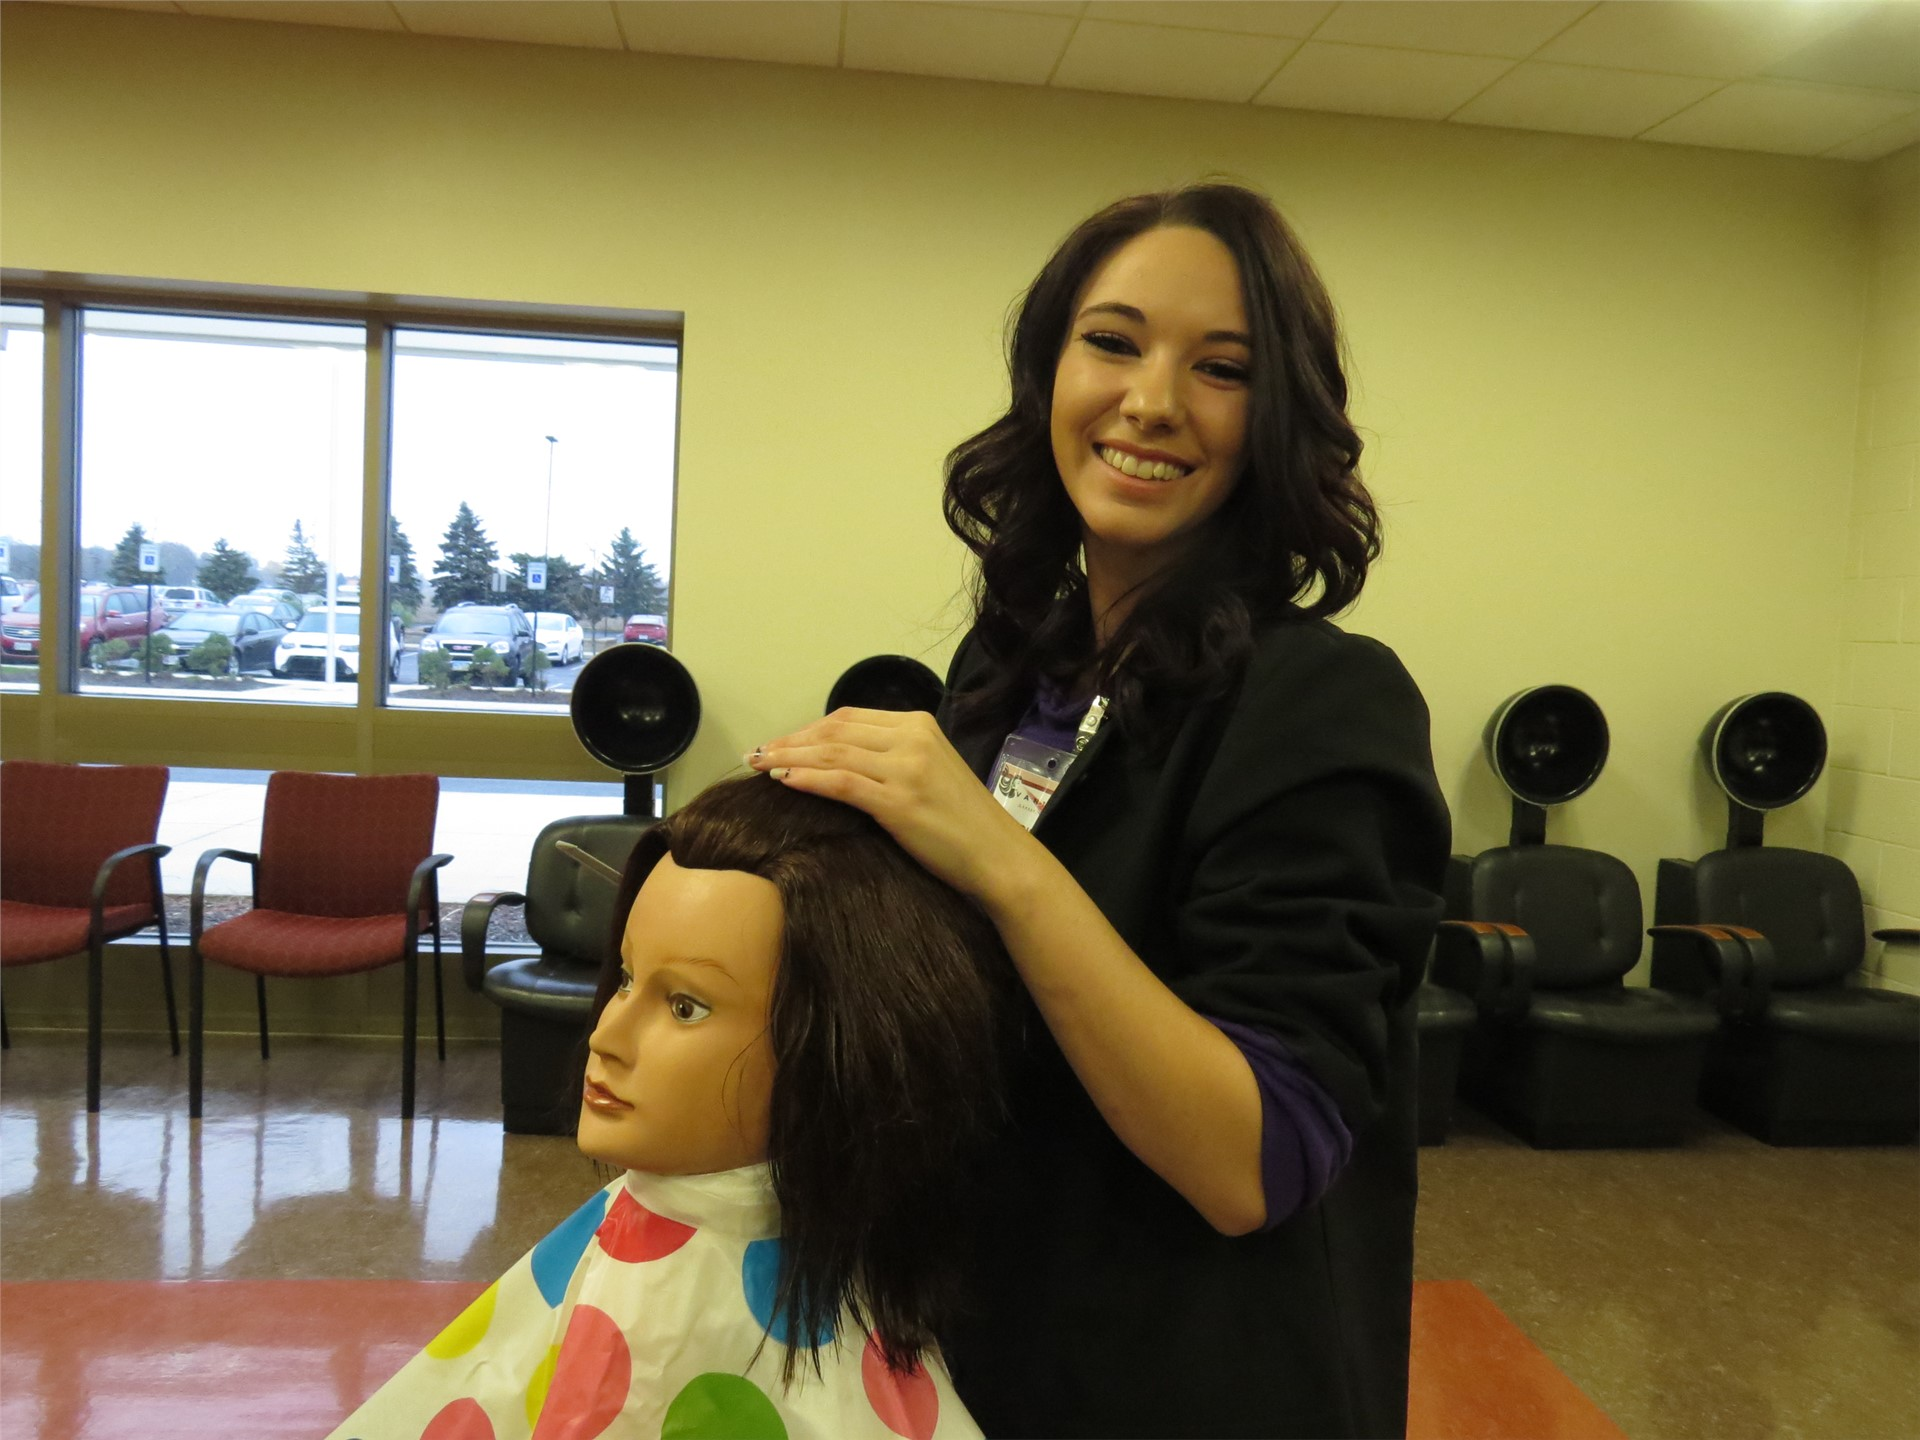 Female Cosmetology student smiling while working on a mannequin